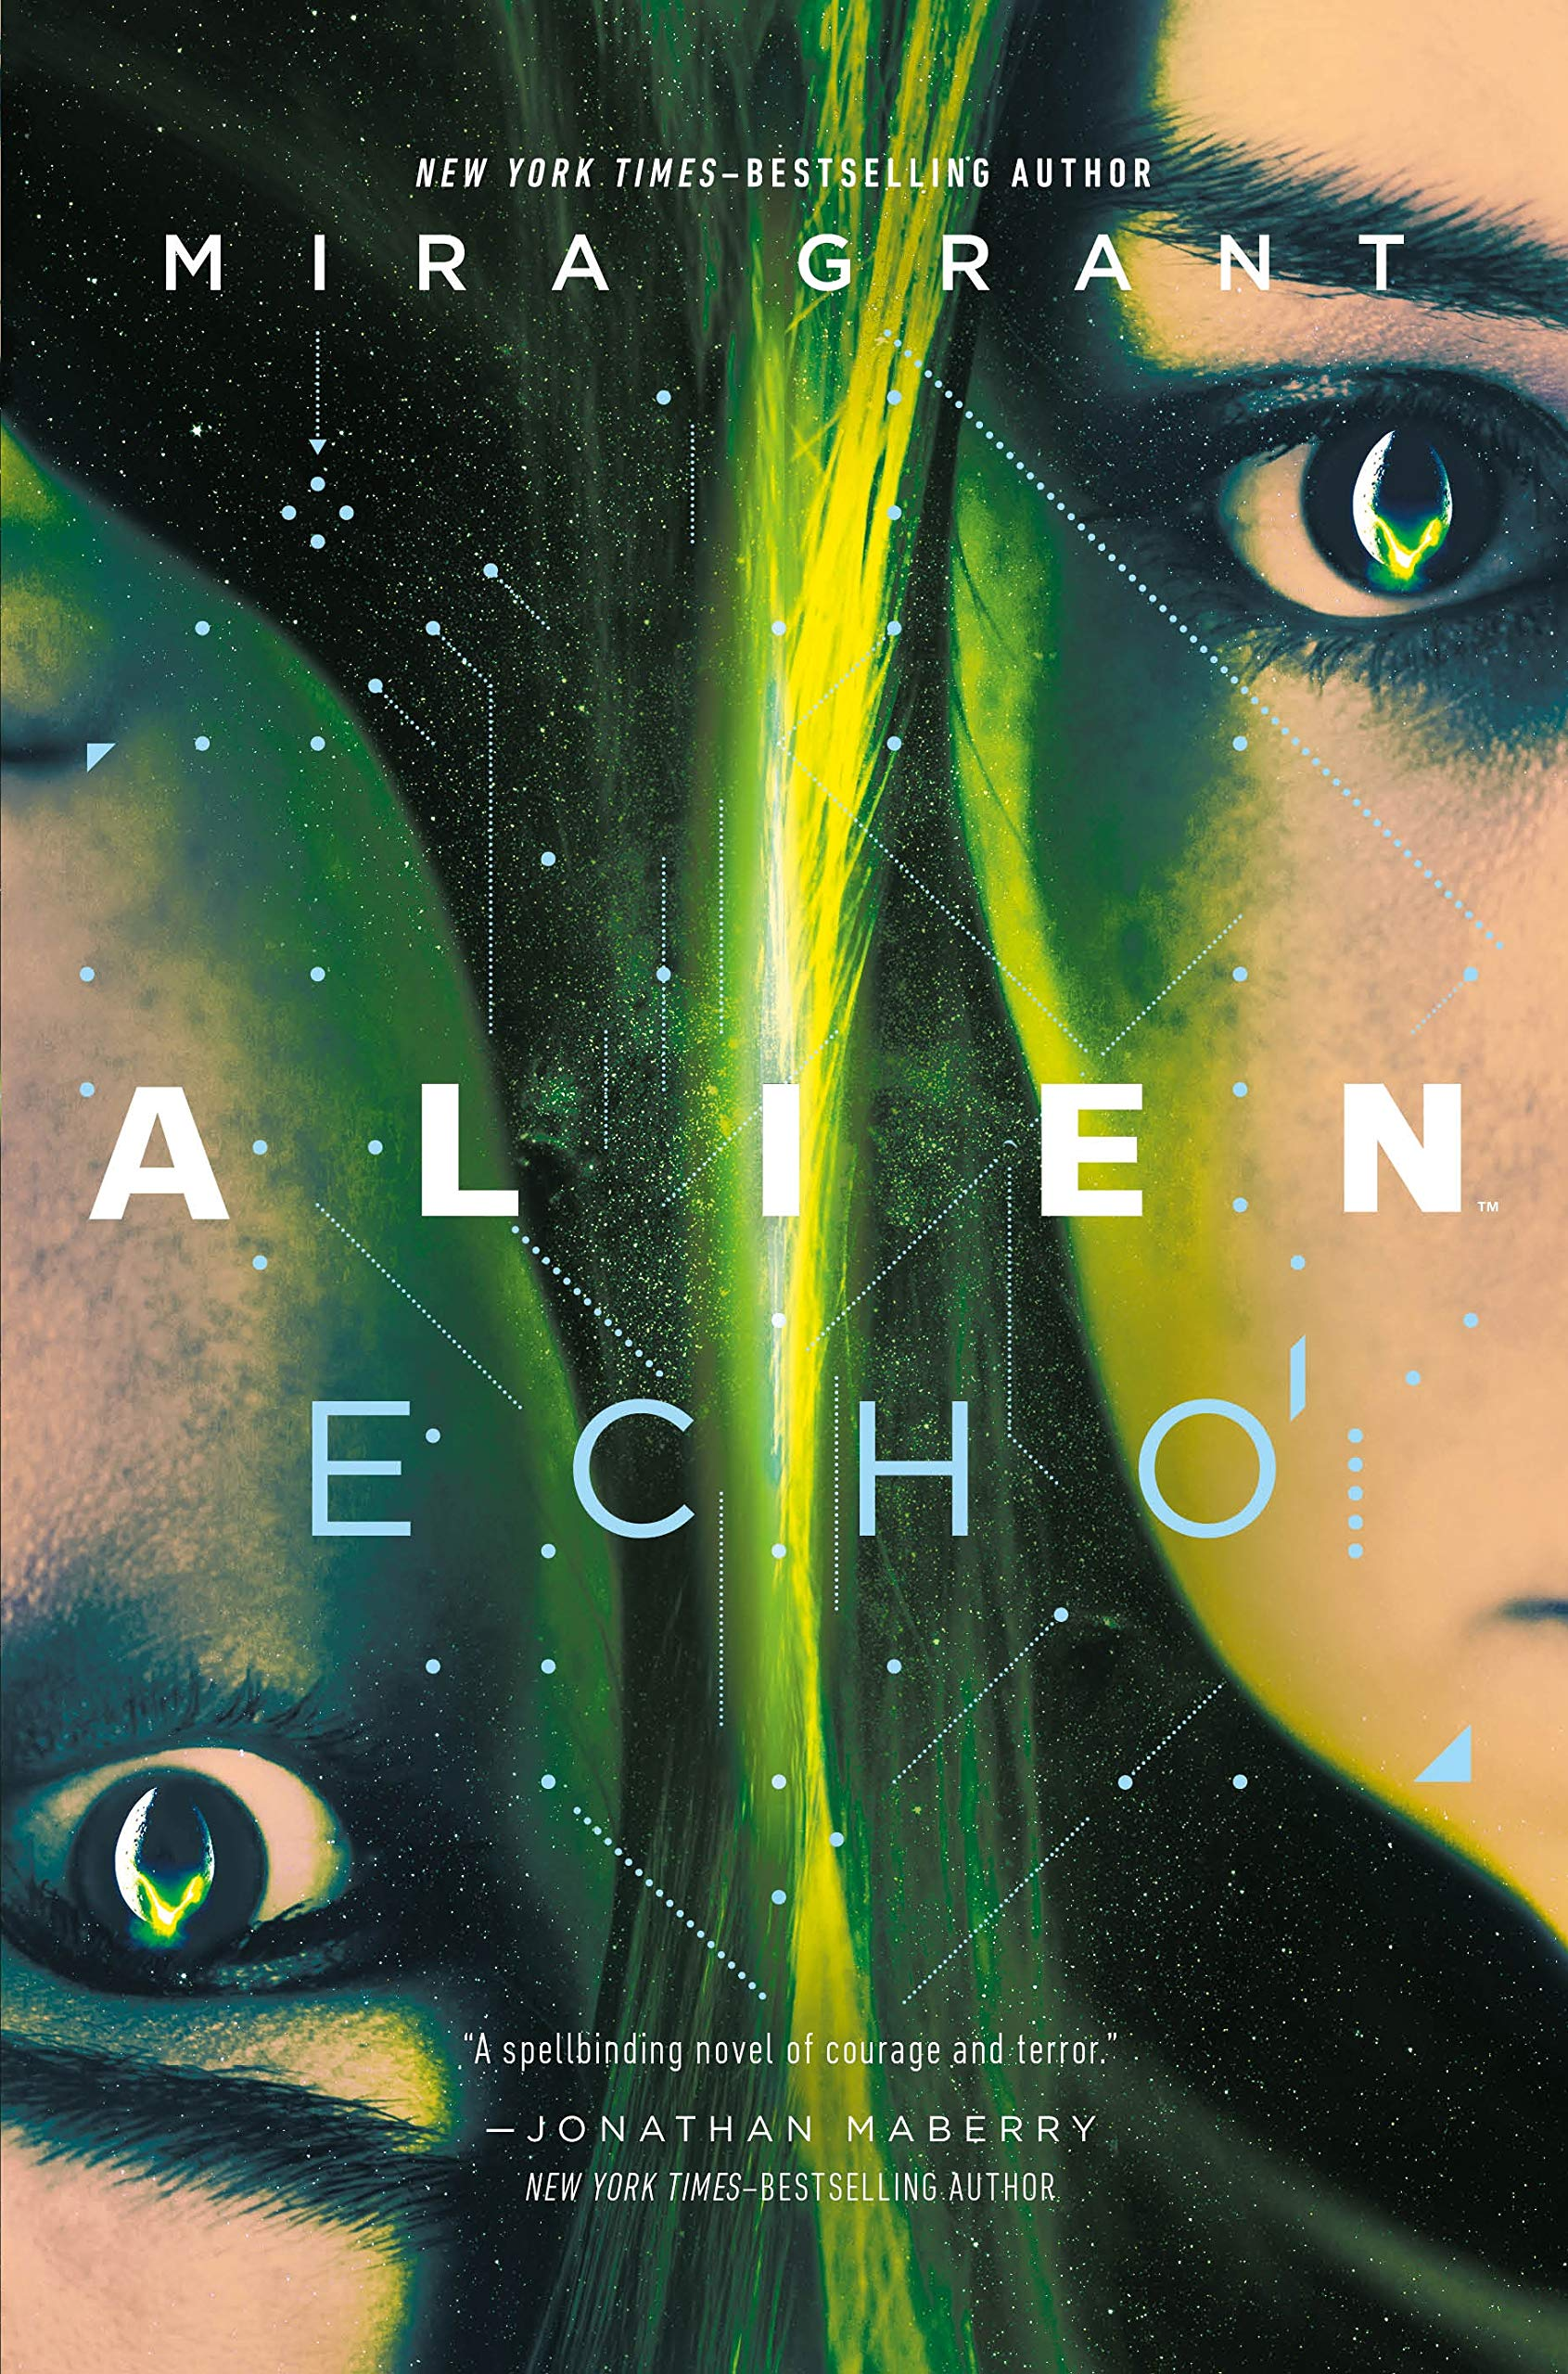 Amazon.com: Alien: Echo: An Original Young Adult Novel of the Alien  Universe (9781250306296): Grant, Mira: Books